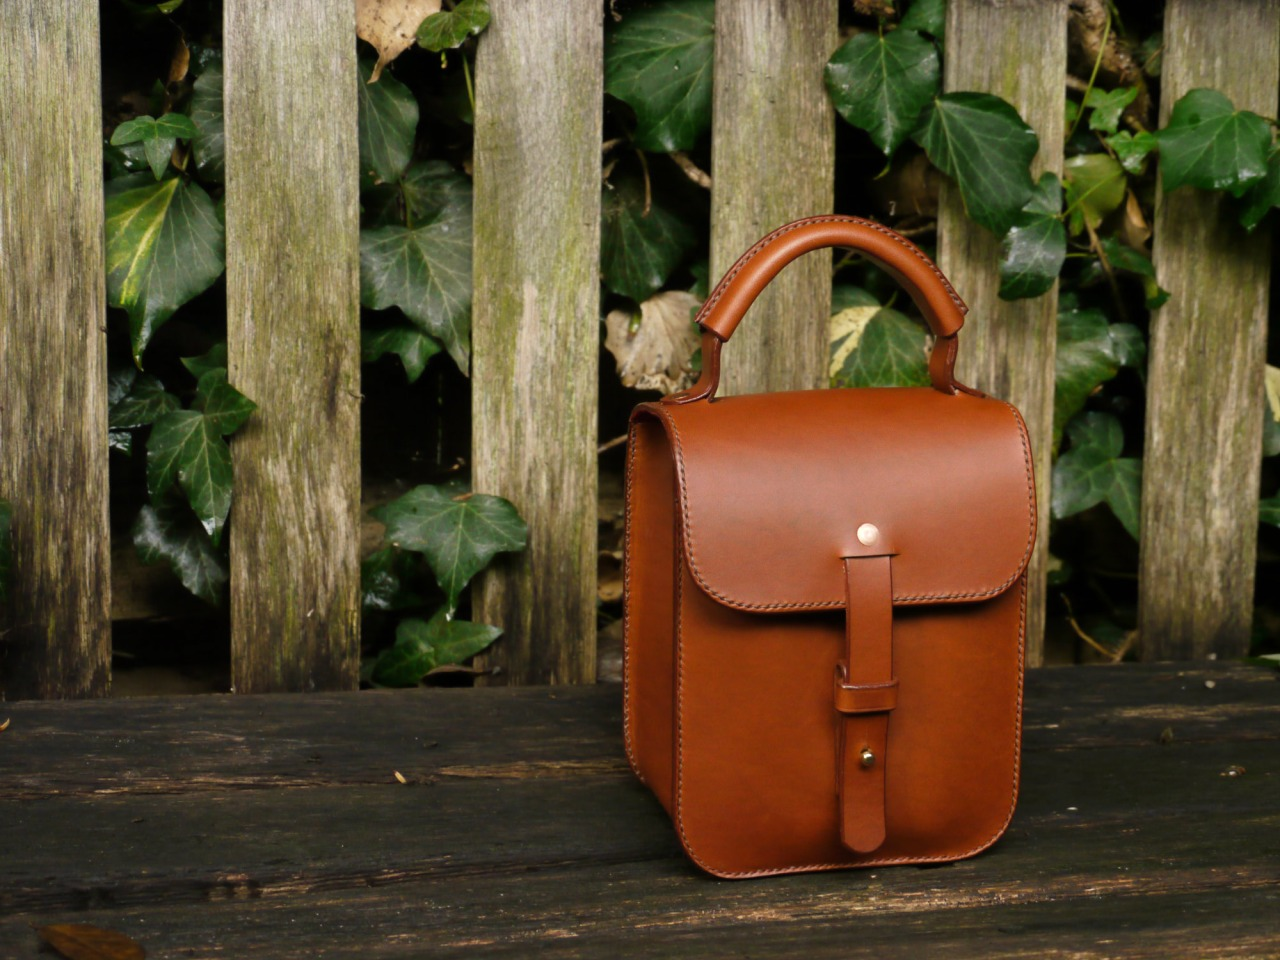 Meg's barell style bag | fully lined with scarlet suede